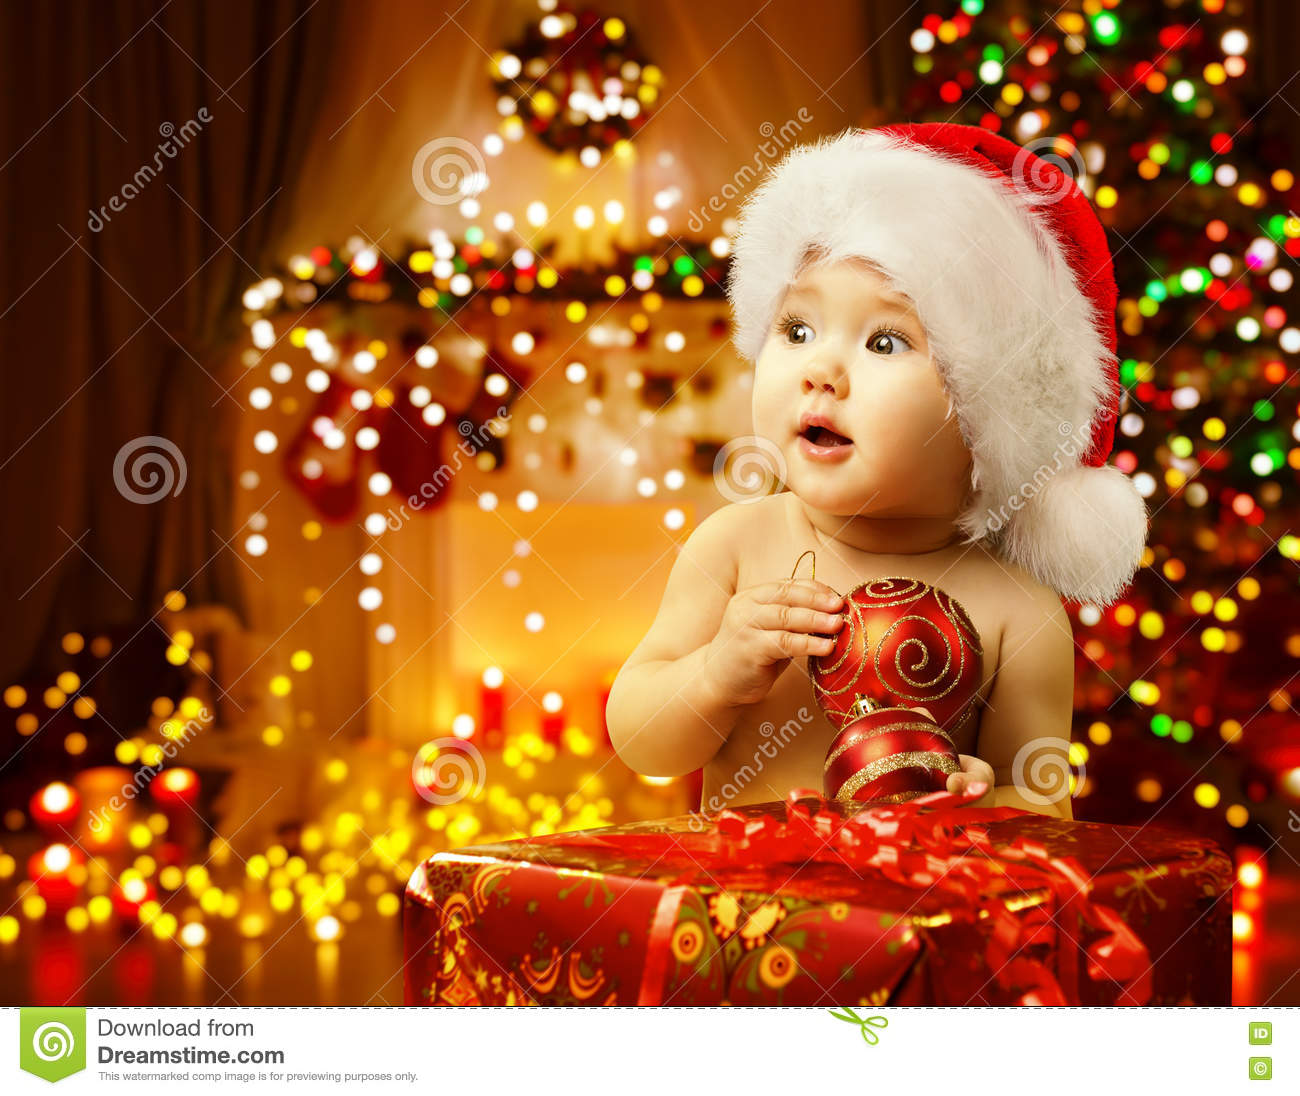 Christmas Baby Opening Present Happy Kid Santa Hat Xmas Gift  - Baby With Christmas Lights